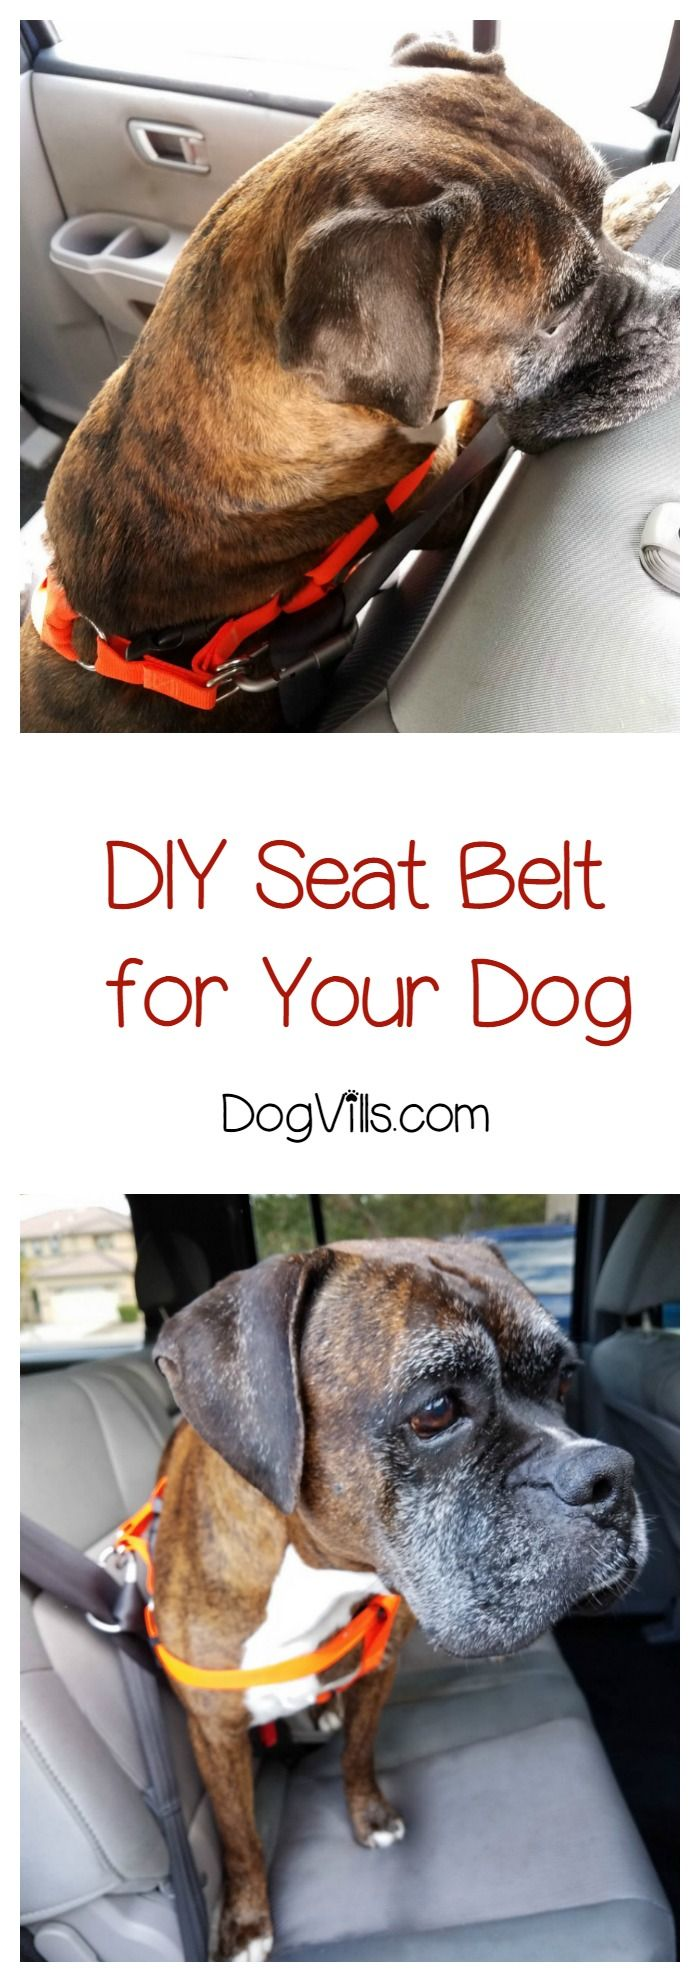 Ever notice that there just aren't enough dog accessories designed to keep Fido safe in the car? We've fixed that with an easy DIY dog seat belt! Check it out!